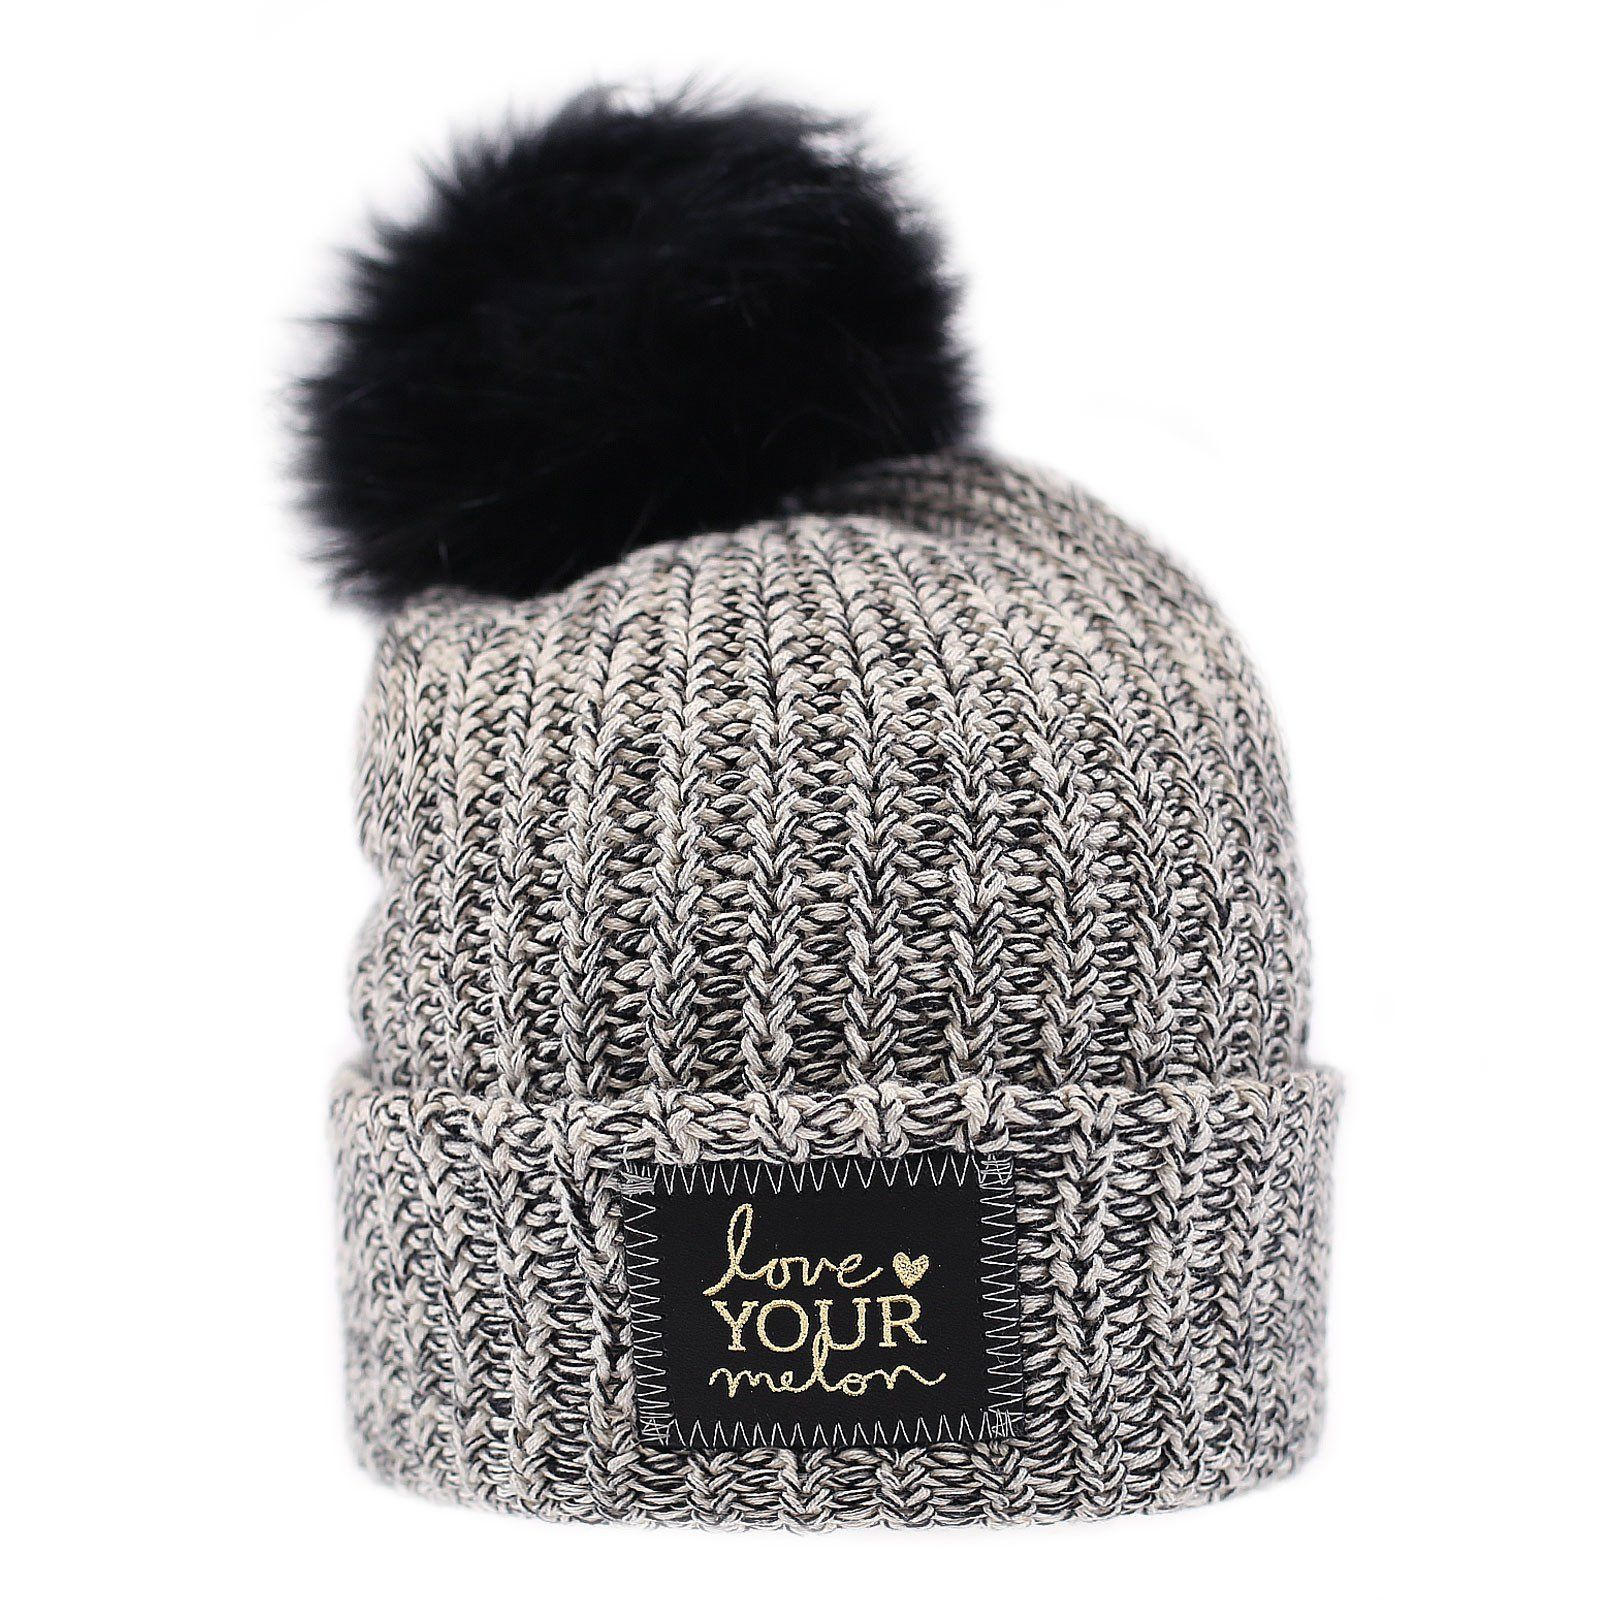 e29fe88d069 Black Speckled Gold Foil Cuffed Pom Beanie (Black Pom) – Love Your Melon